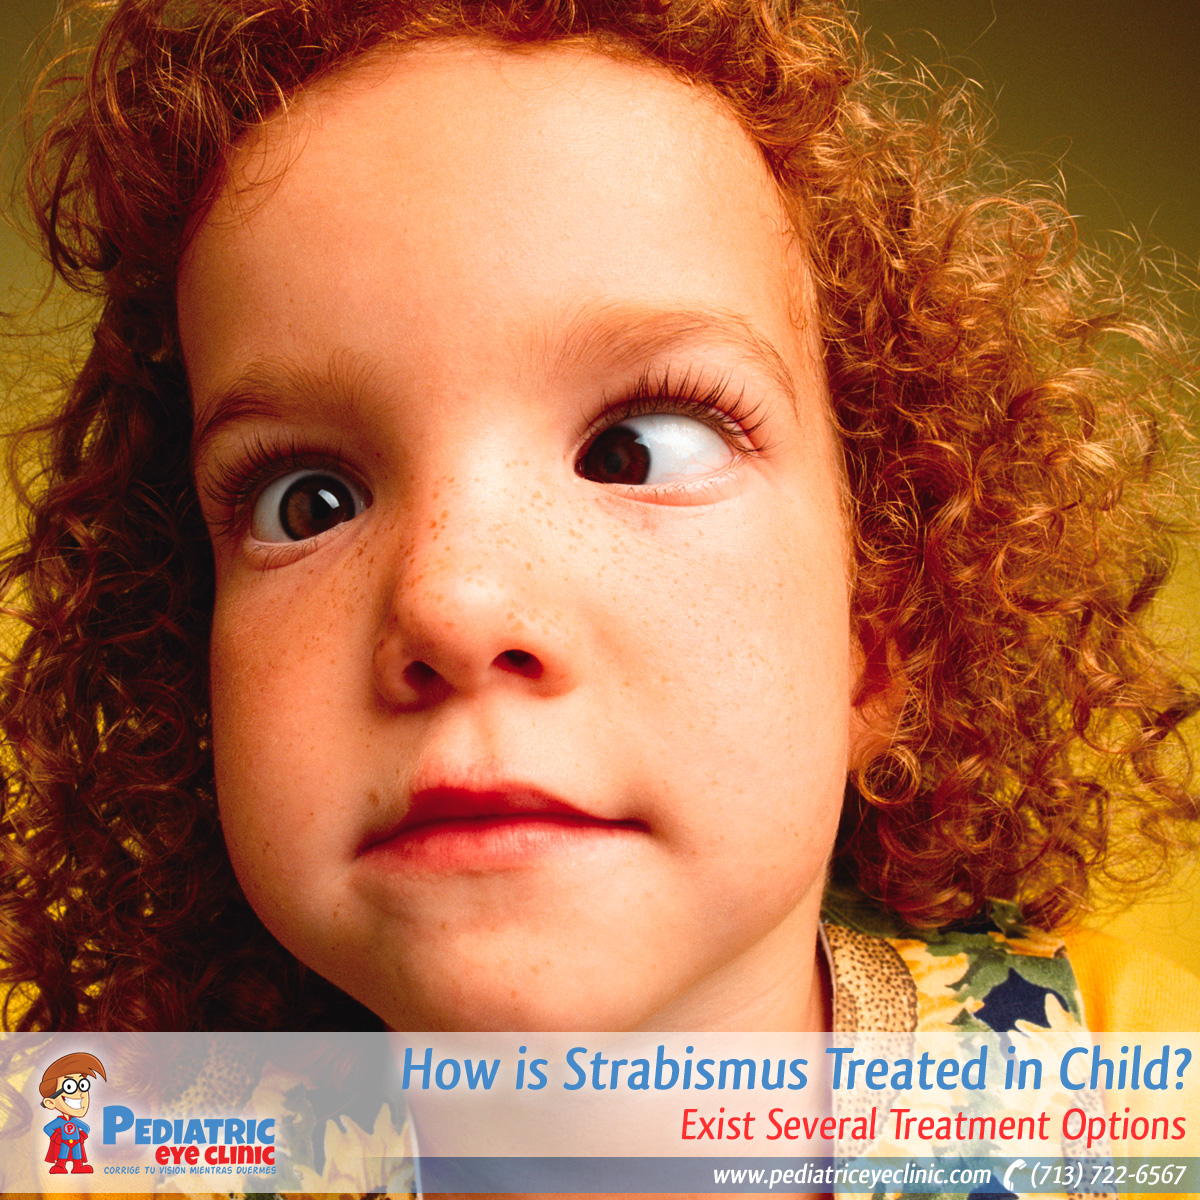 13-how-is-strabismus-treated-in-child